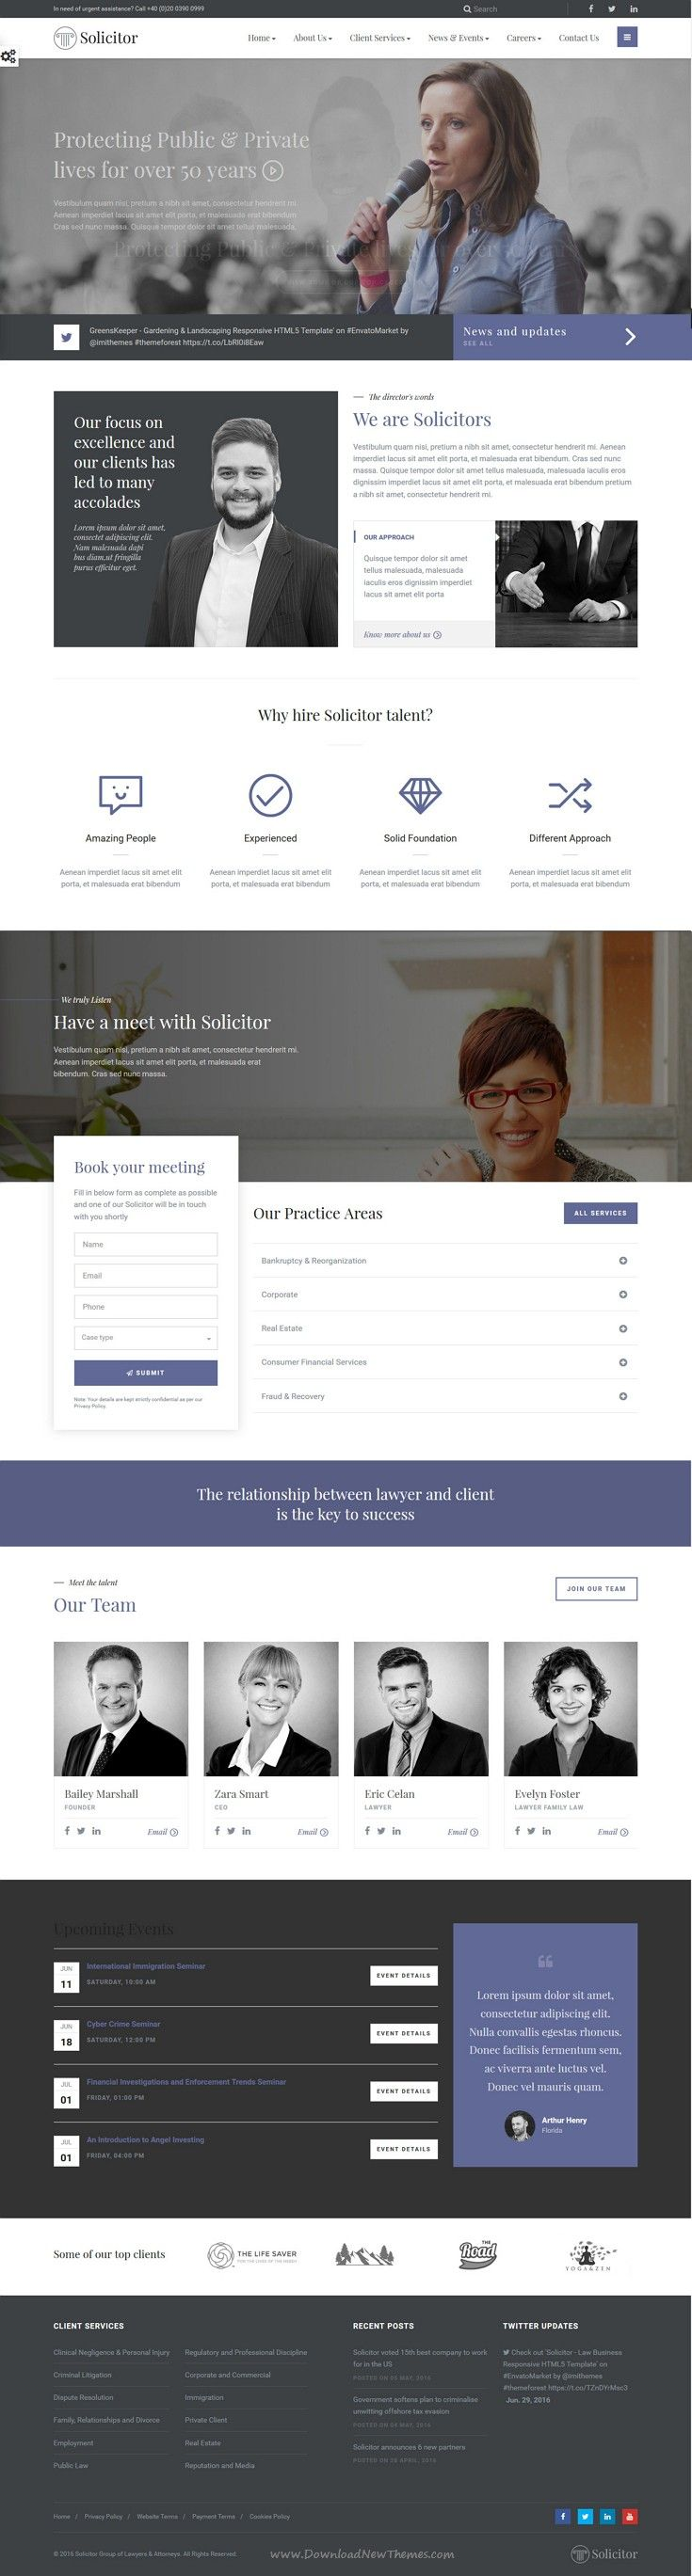 Solicitor - Law Business Responsive HTML5 Template | Corporate ...